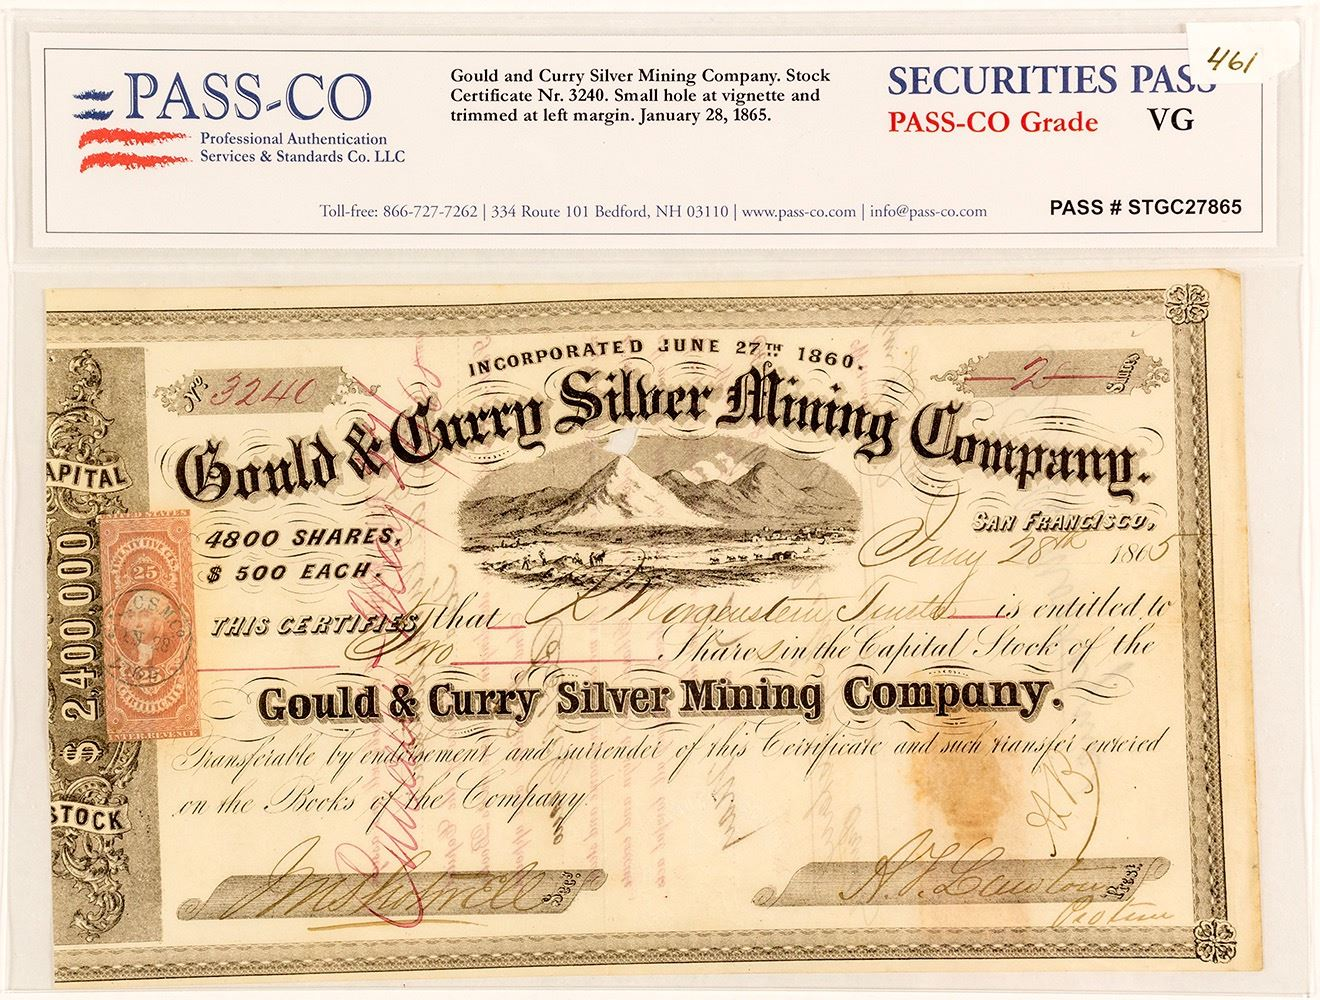 Gould Curry Silver Mining Company Stock Certificate 1865